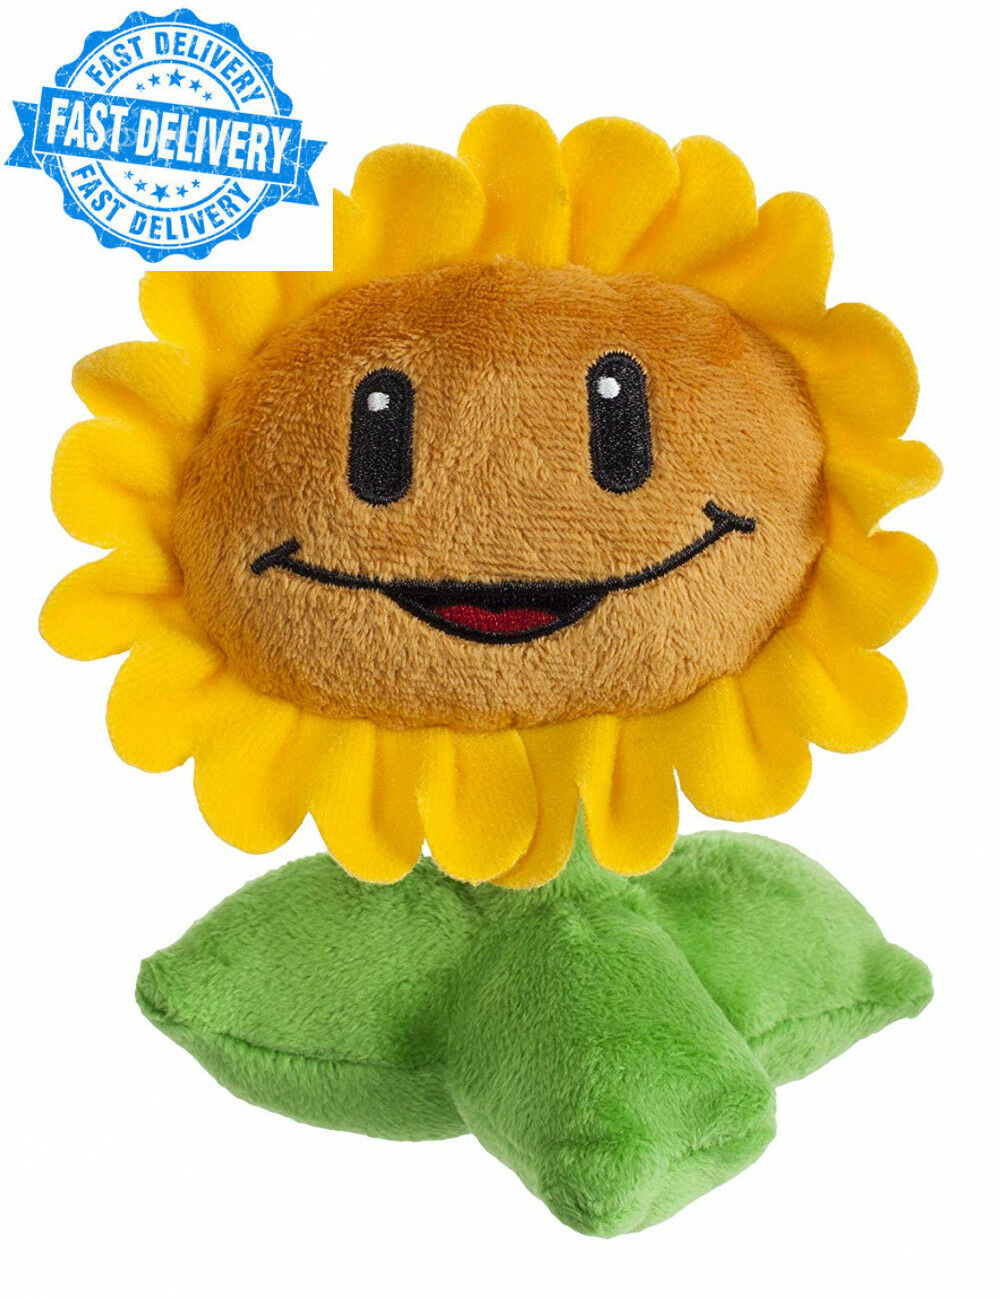 Plants vs Zombies 7-inch Sunflower Plush Toy